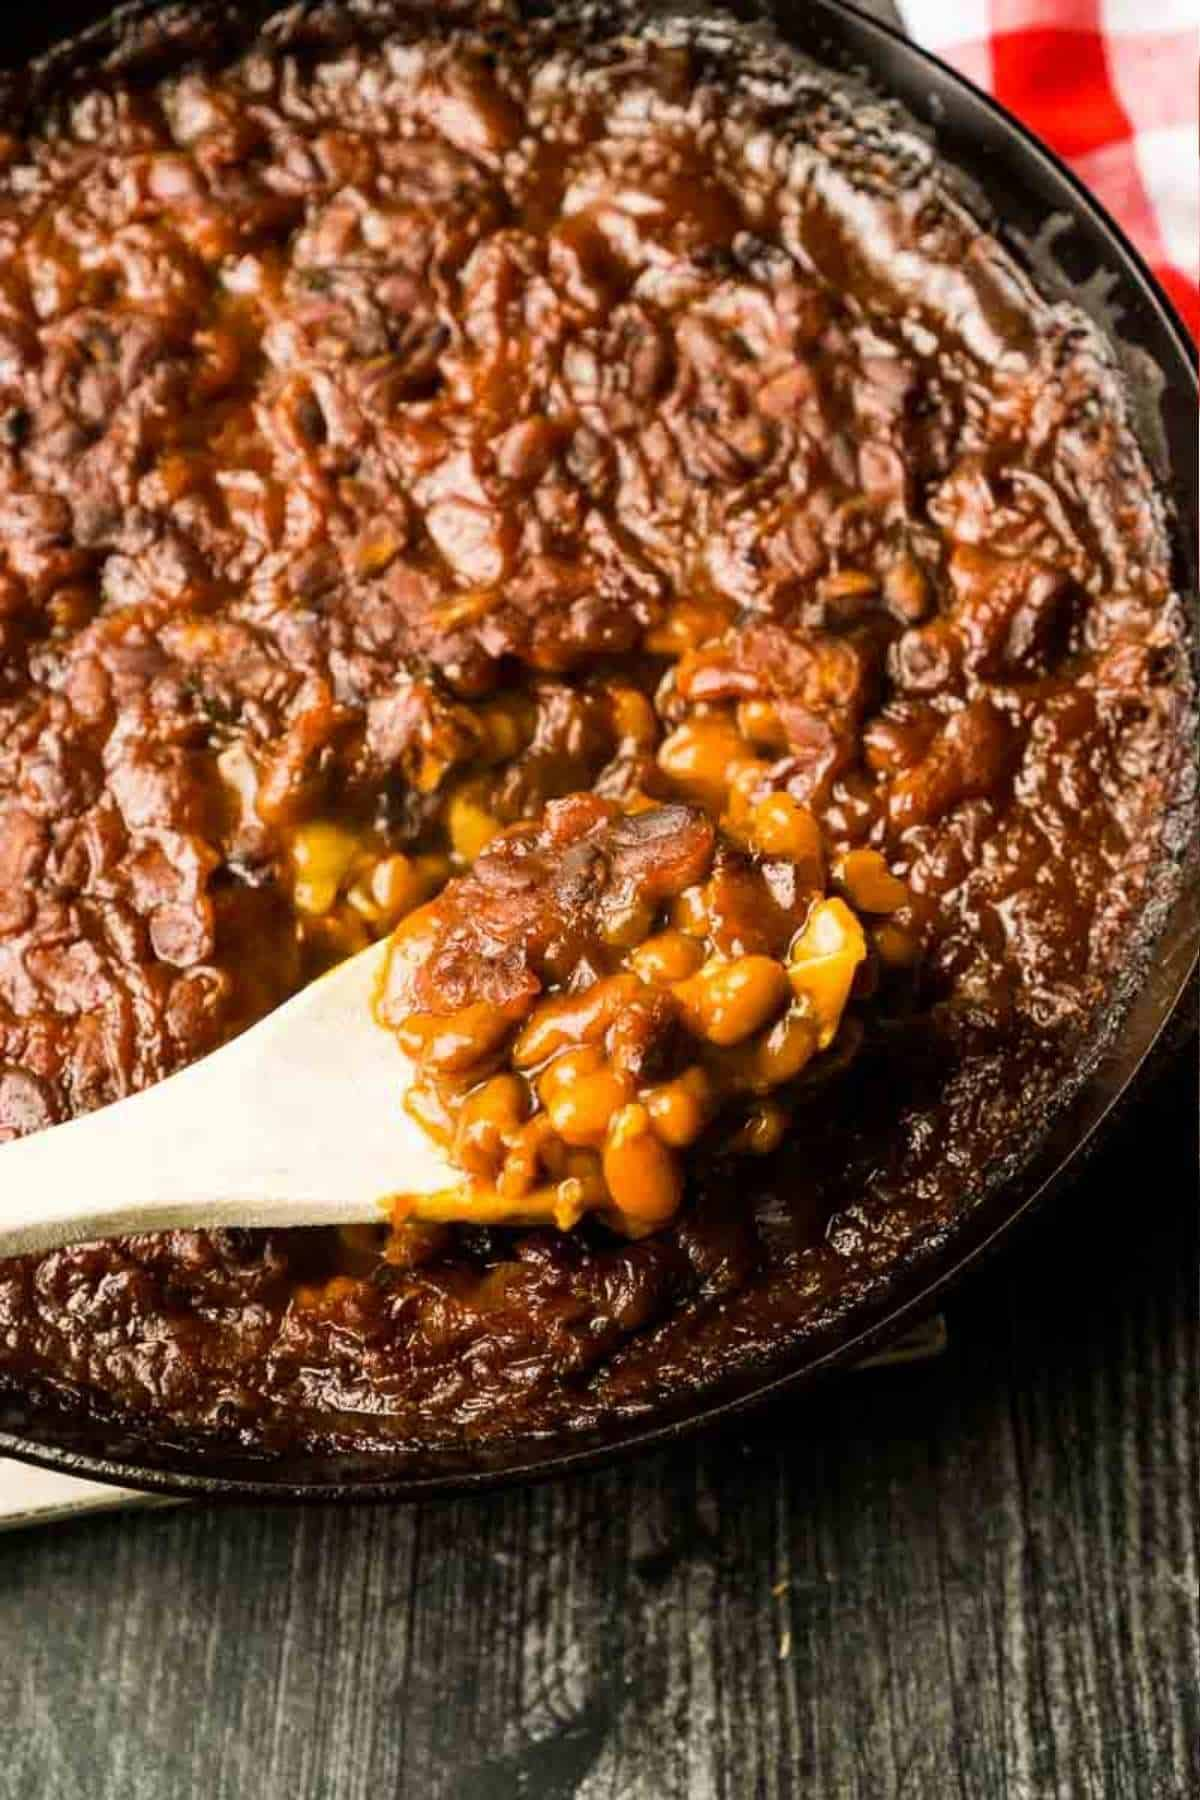 scoop of baked beans in cast iron skillet